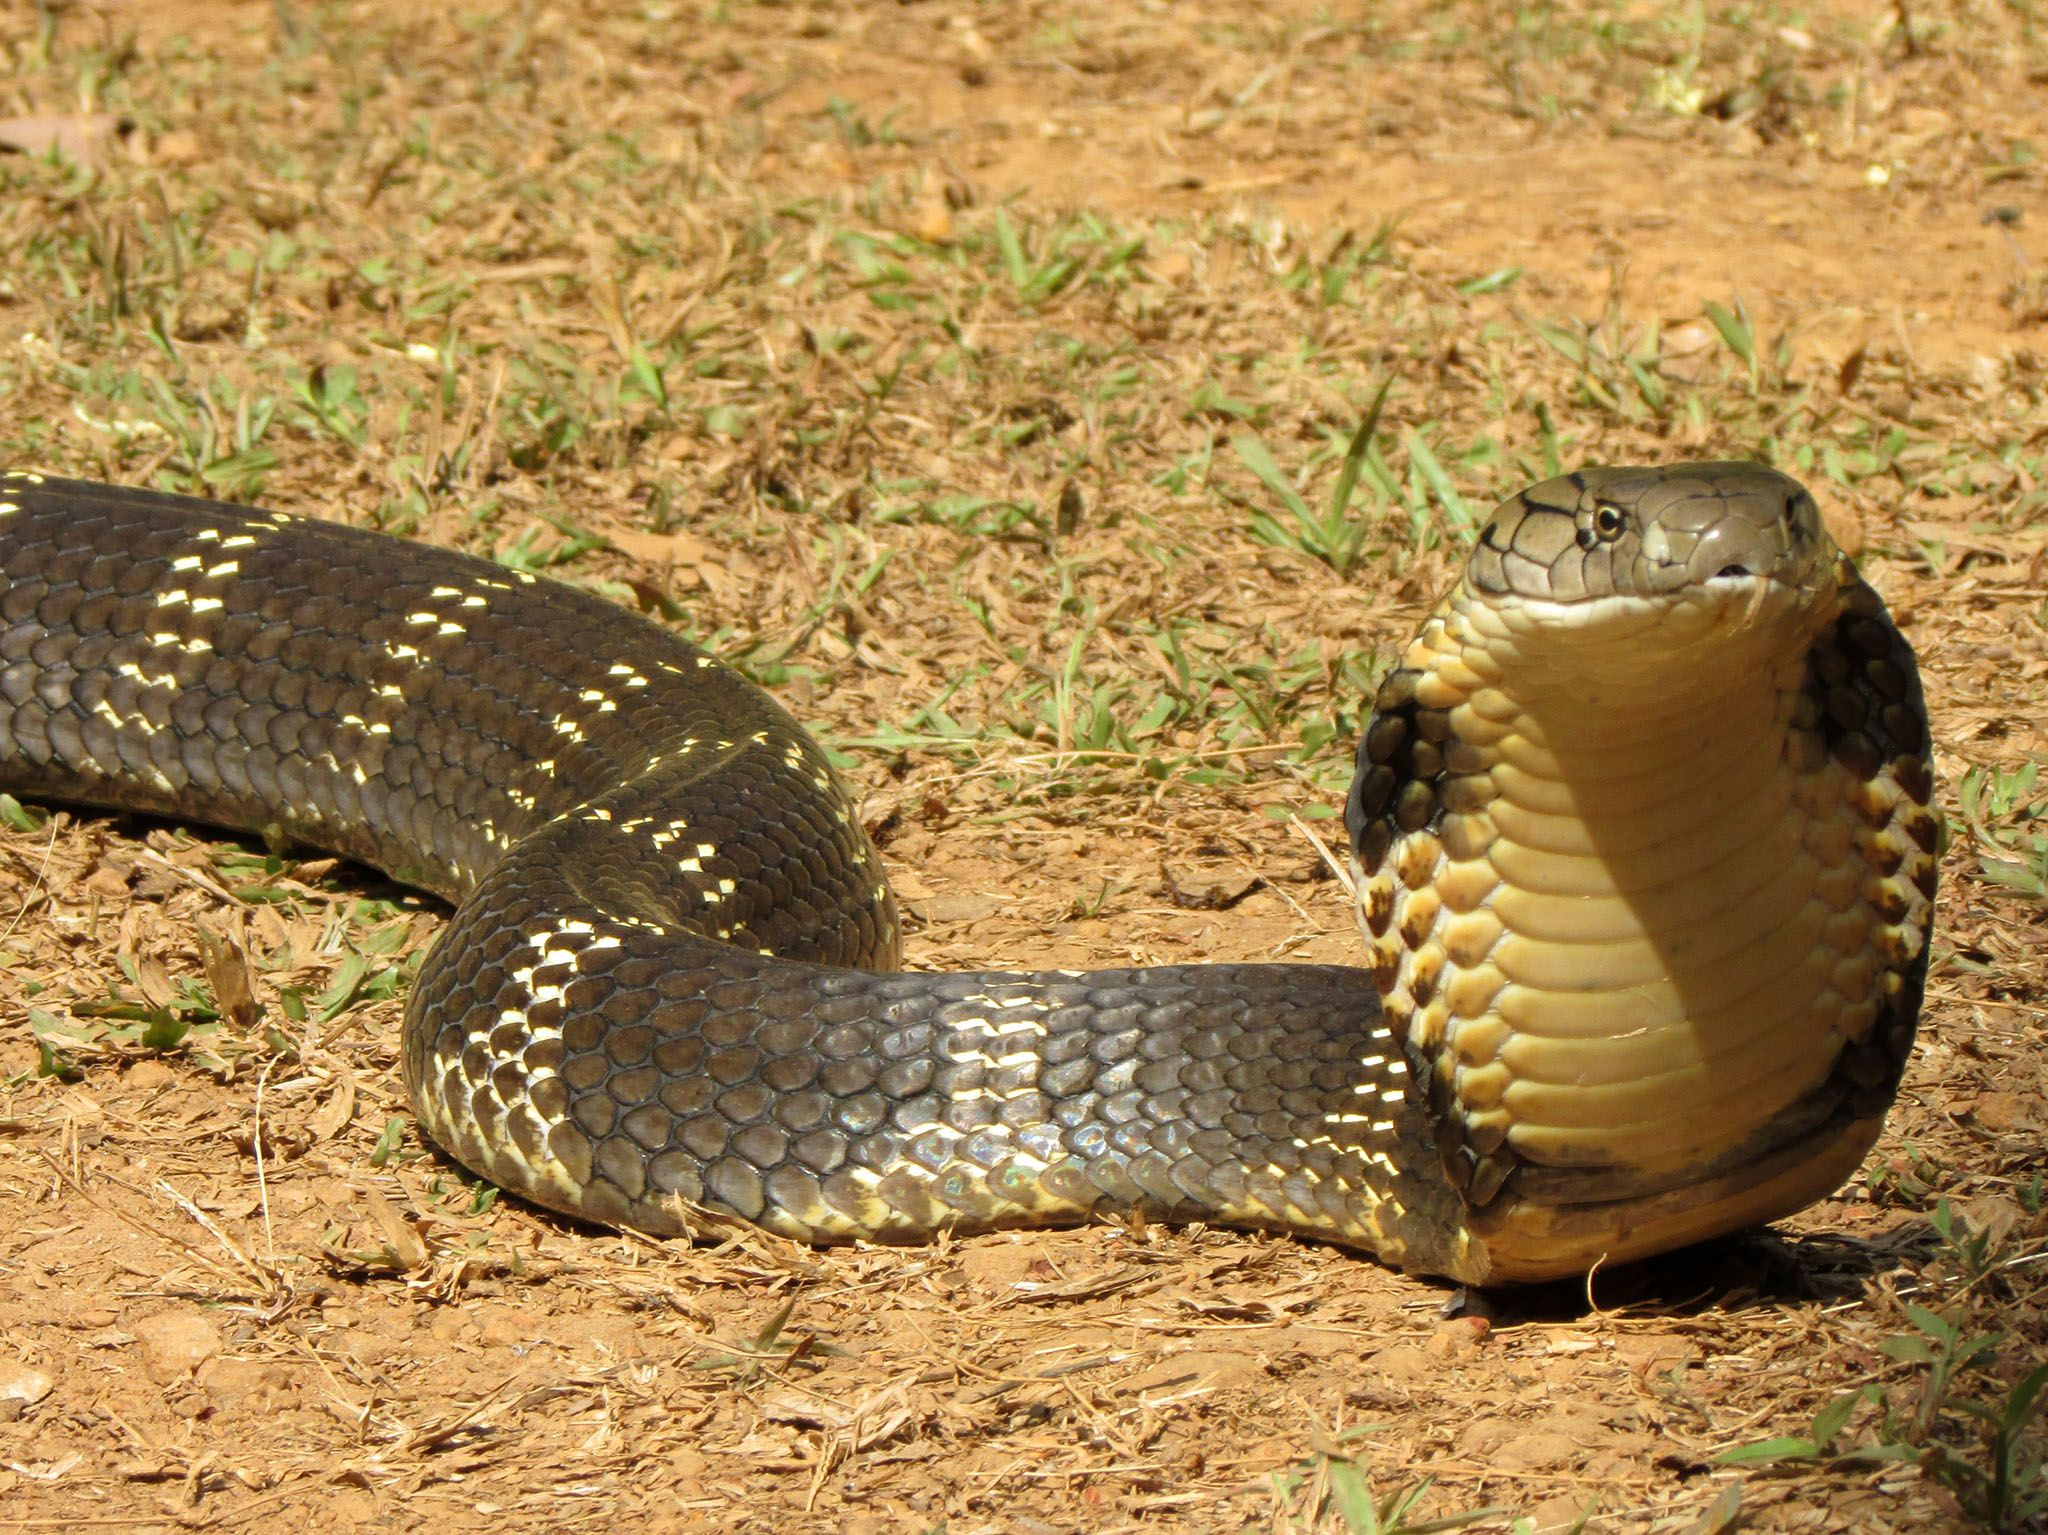 India: King cobra (Ophiophagus hannah) slithering on dry grass, raised head. This image is from... [Photo of the day - June 2017]